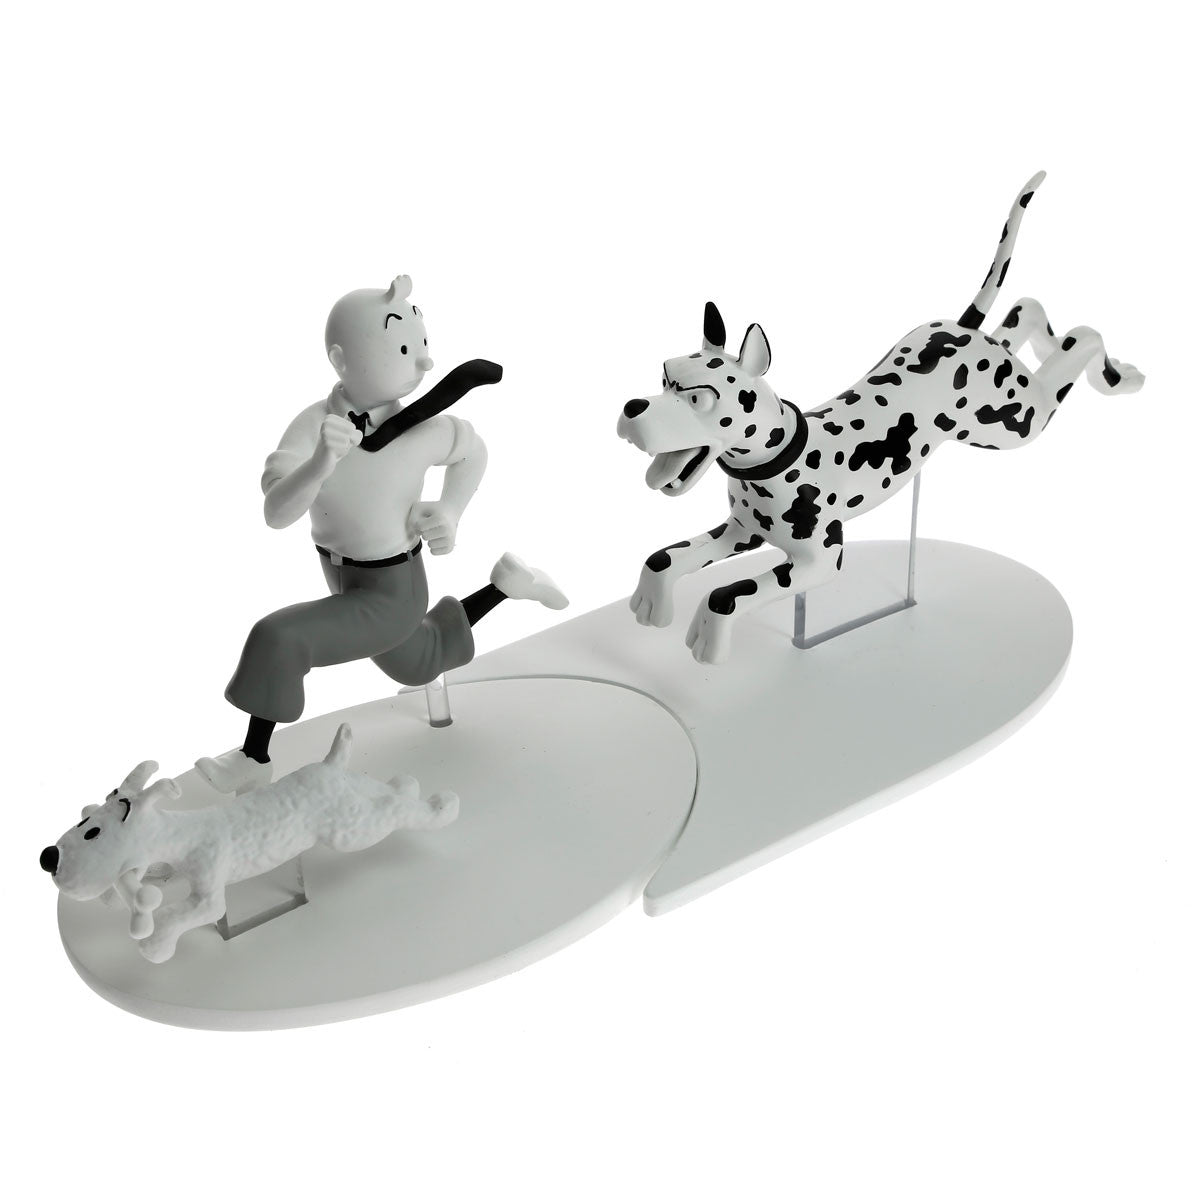 FIGURINE RESINE: B&W - Tintin In The Black Island (Great Dane)